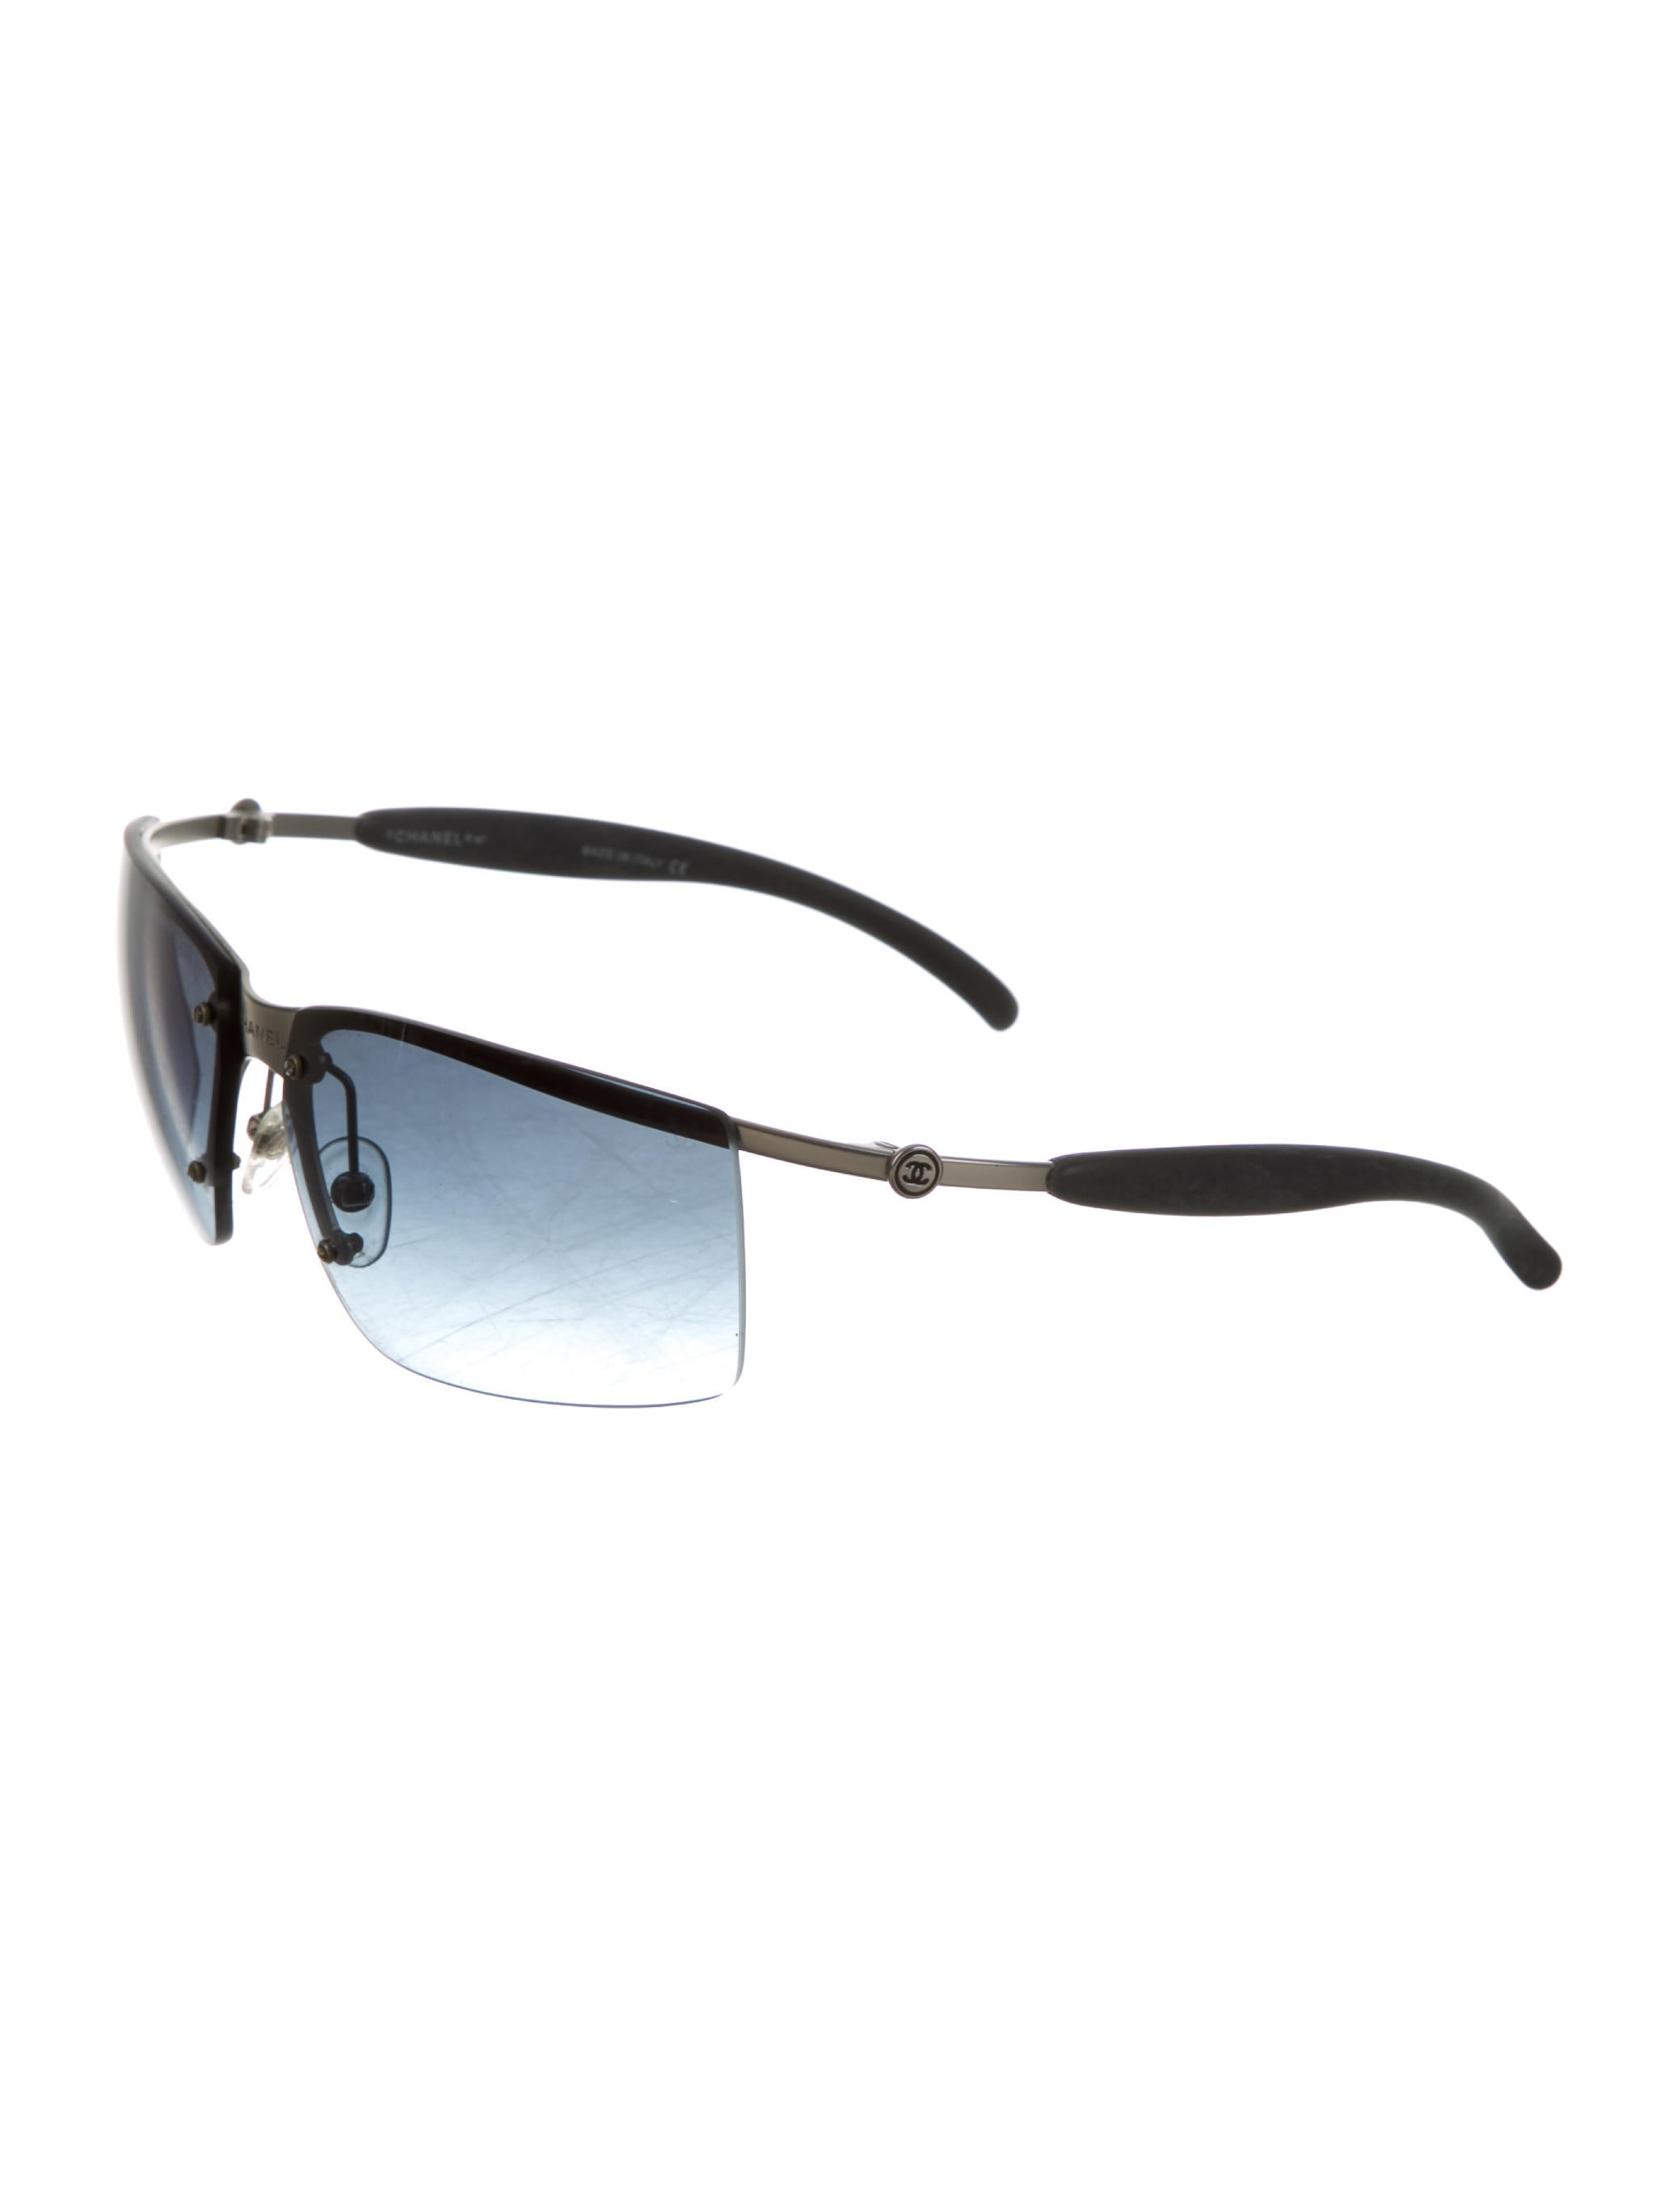 Rimless Chanel Glasses : Chanel Rimless Tinted Sunglasses - Accessories - CHA126623 ...